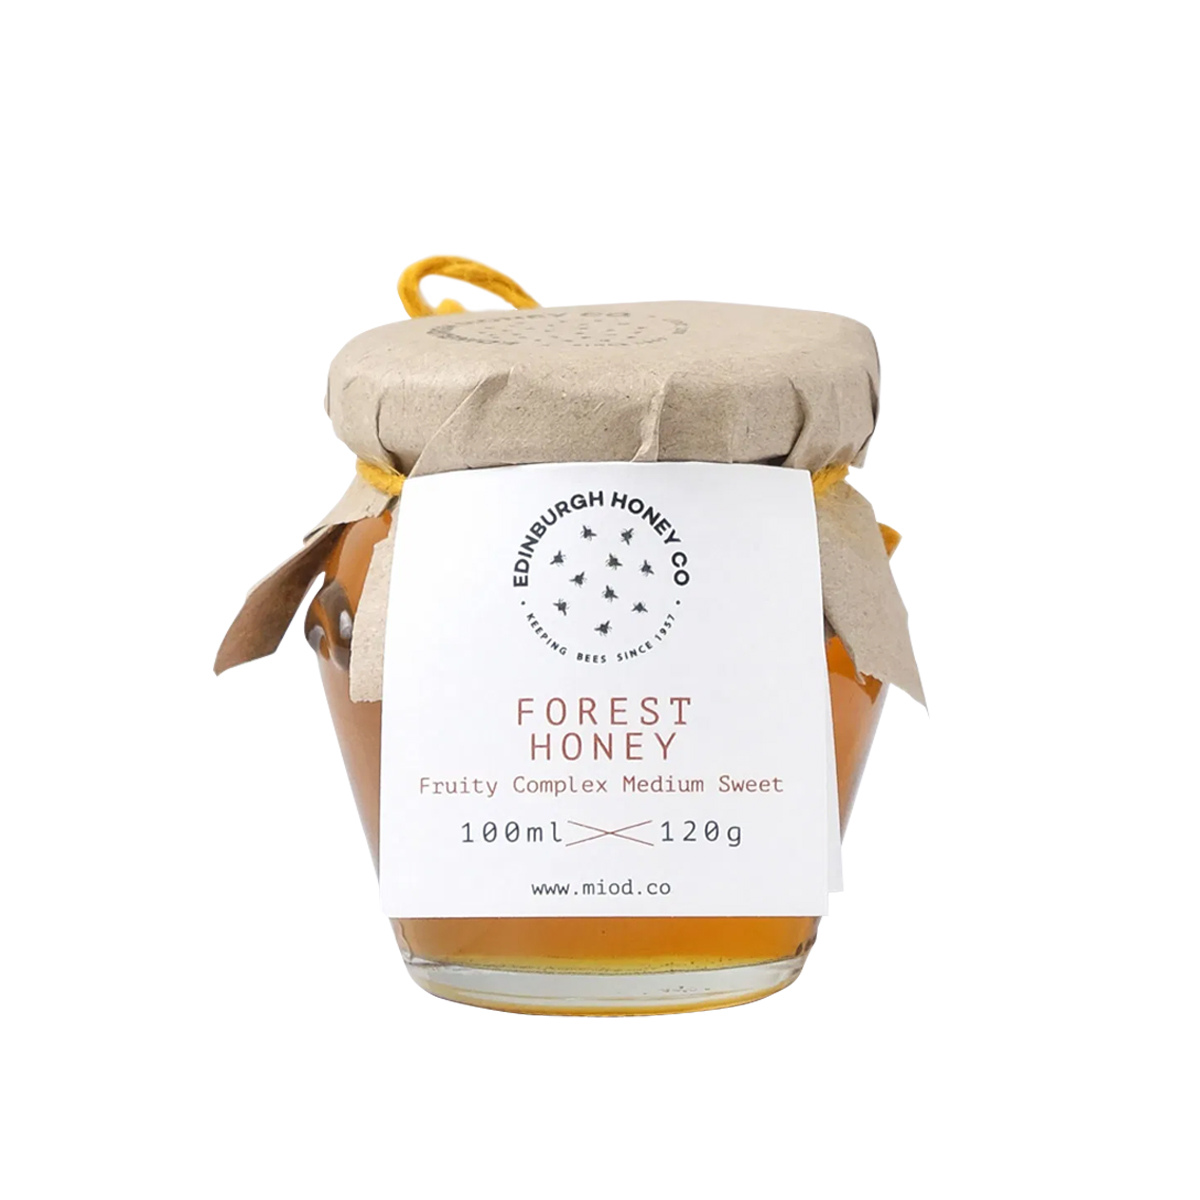 Edinburgh Honey Co. Forest Honey